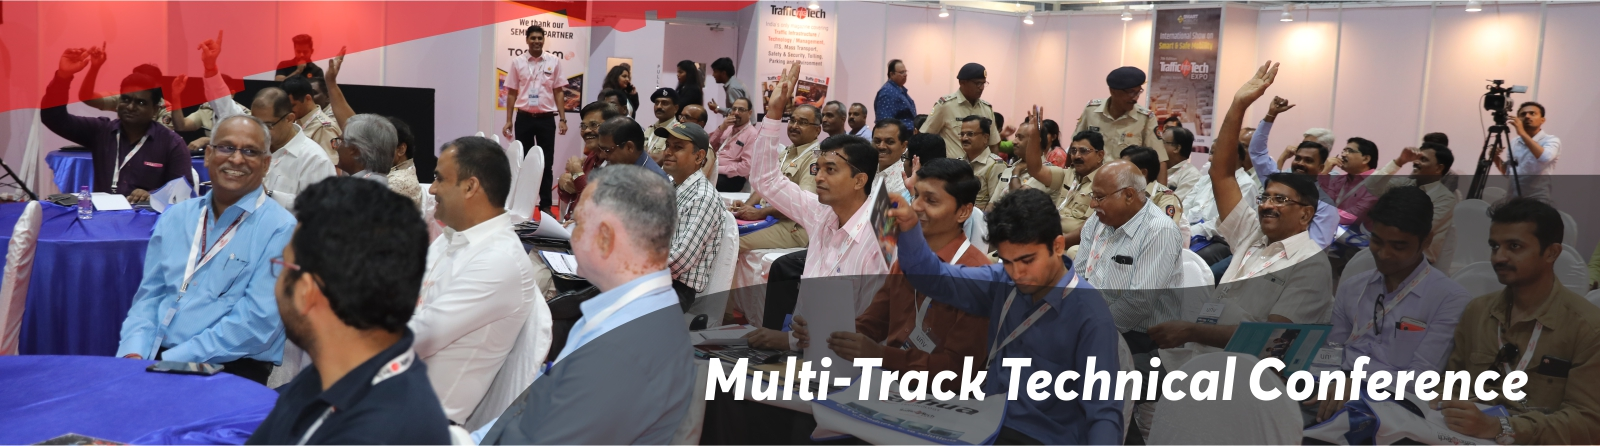 3-Multi-Track-Technical-Conference